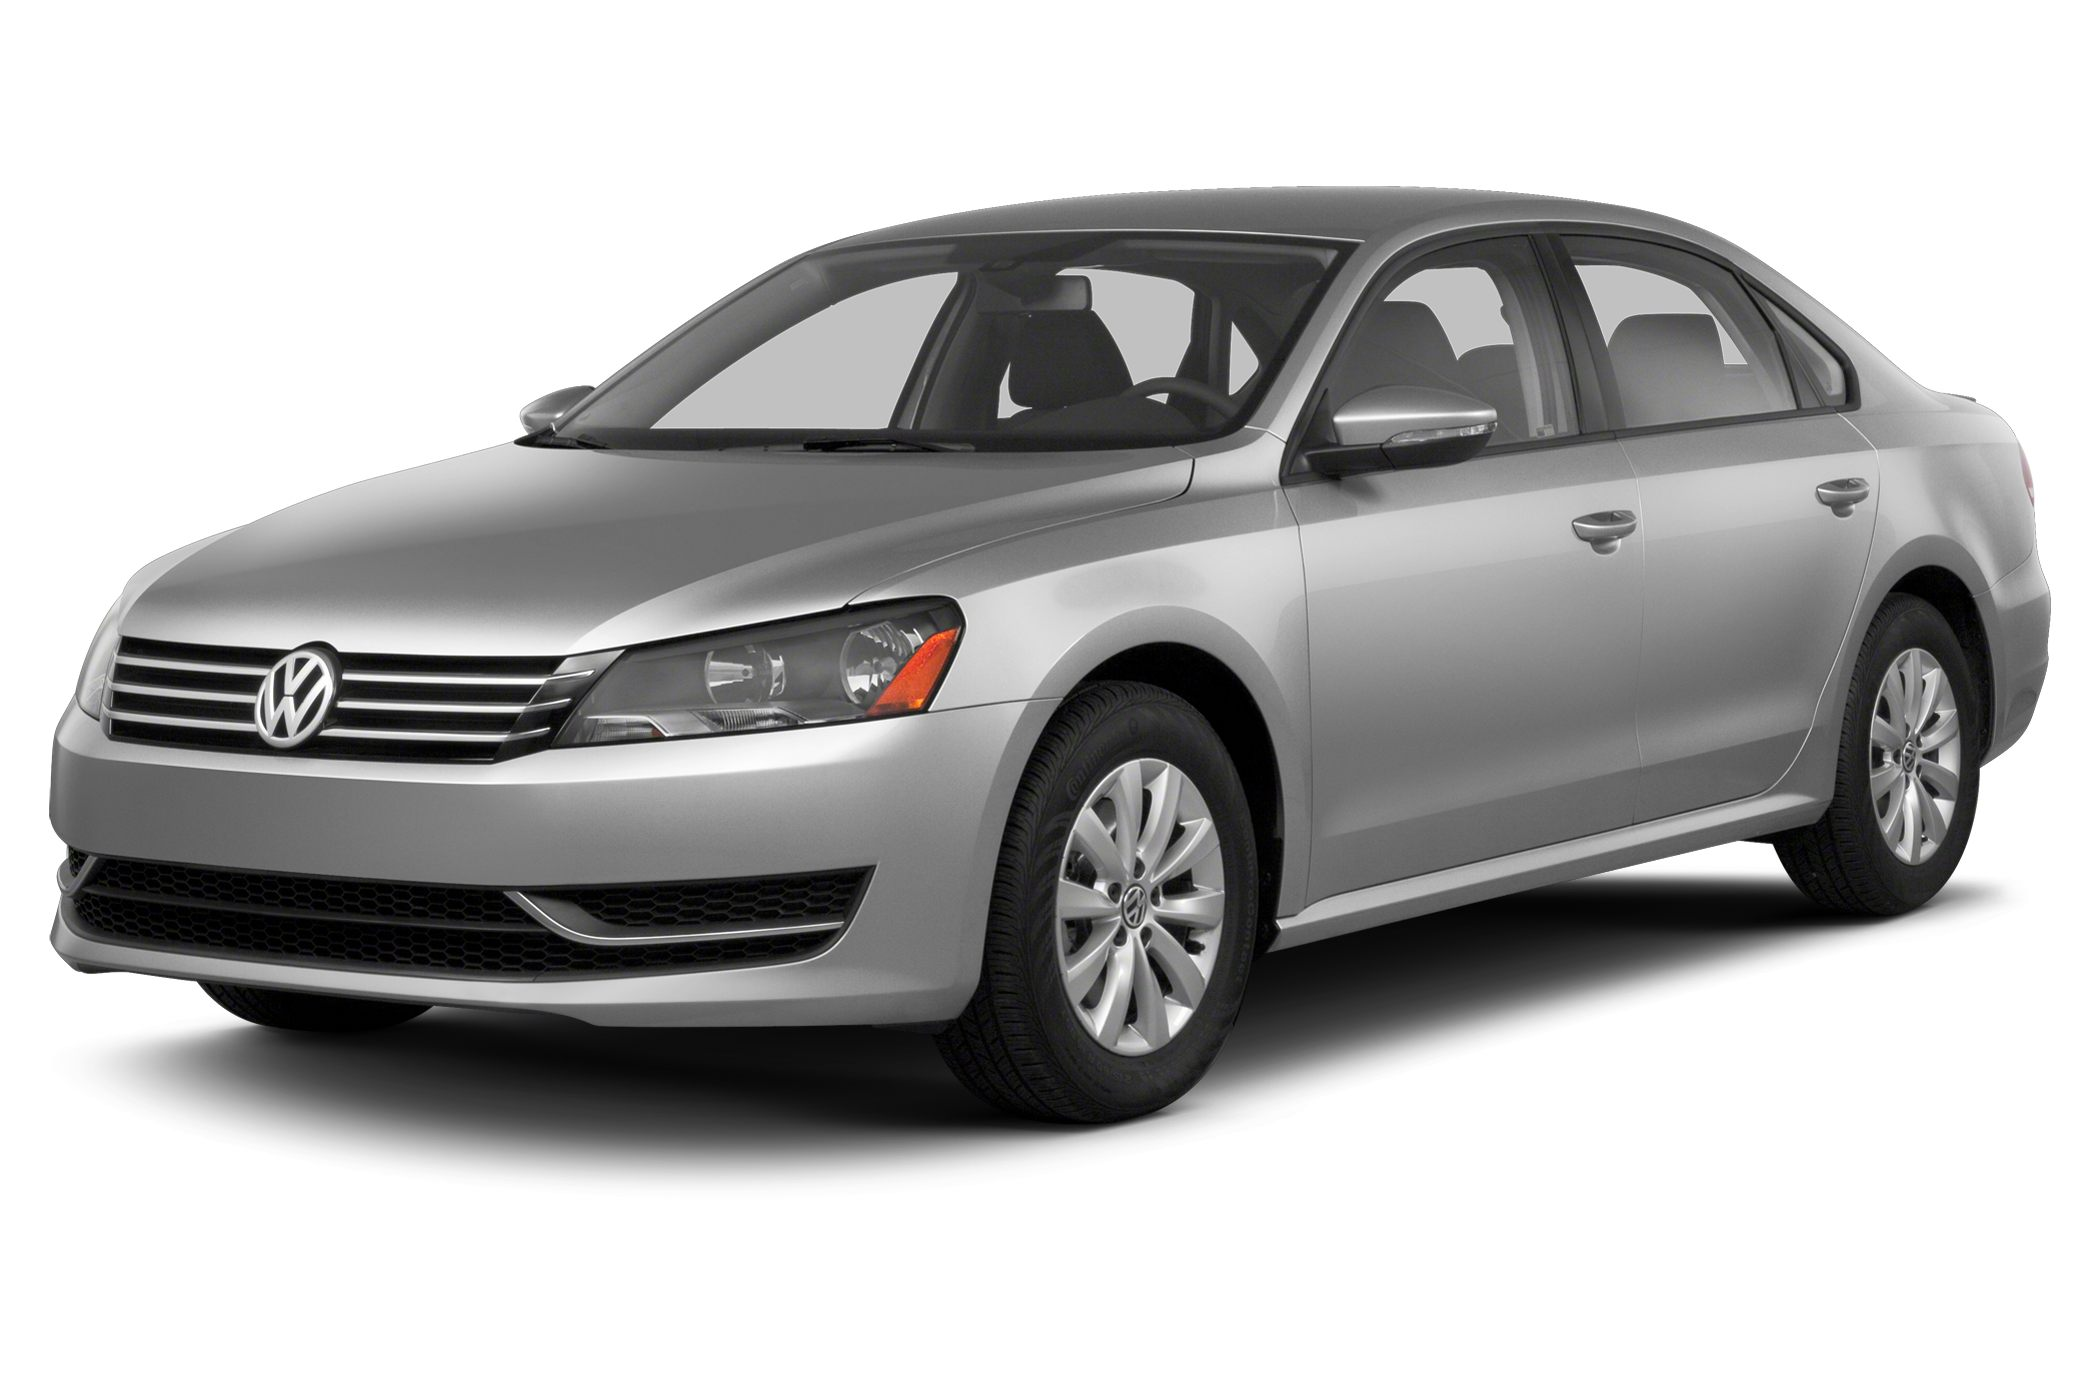 2013 Volkswagen Passat 2.5 S Sedan for sale in Dayton for $15,342 with 51,345 miles.